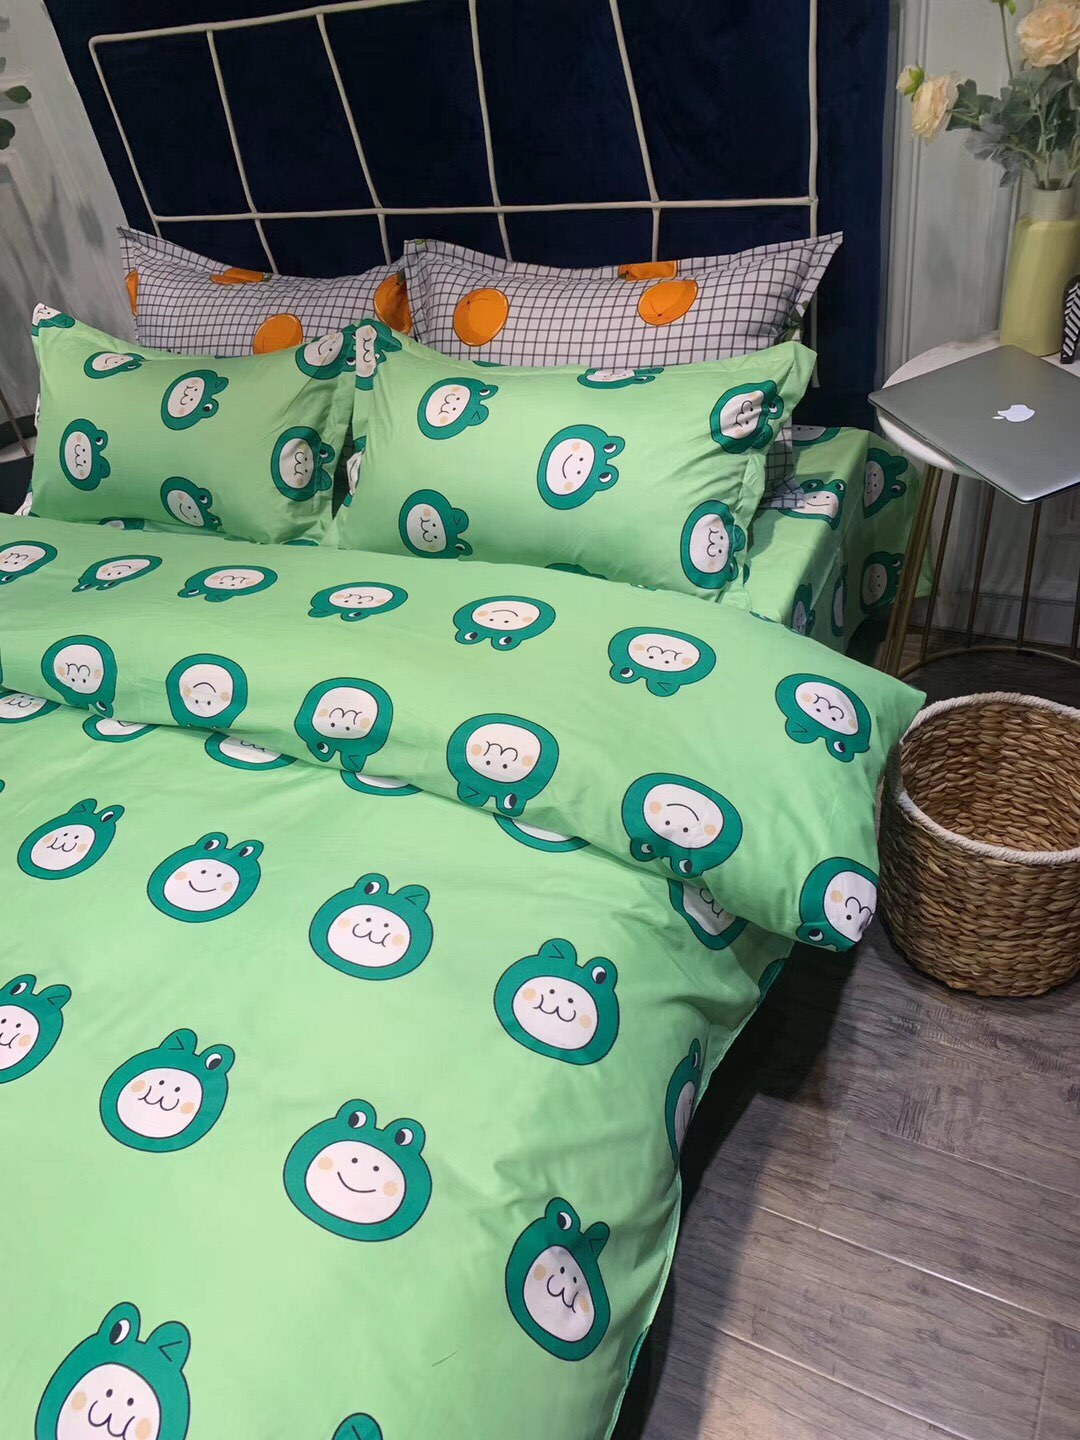 2019 V Wechat Business New Products Hot Selling Polyester Cotton Twill Printed Zara Four-piece Set Bedding Article